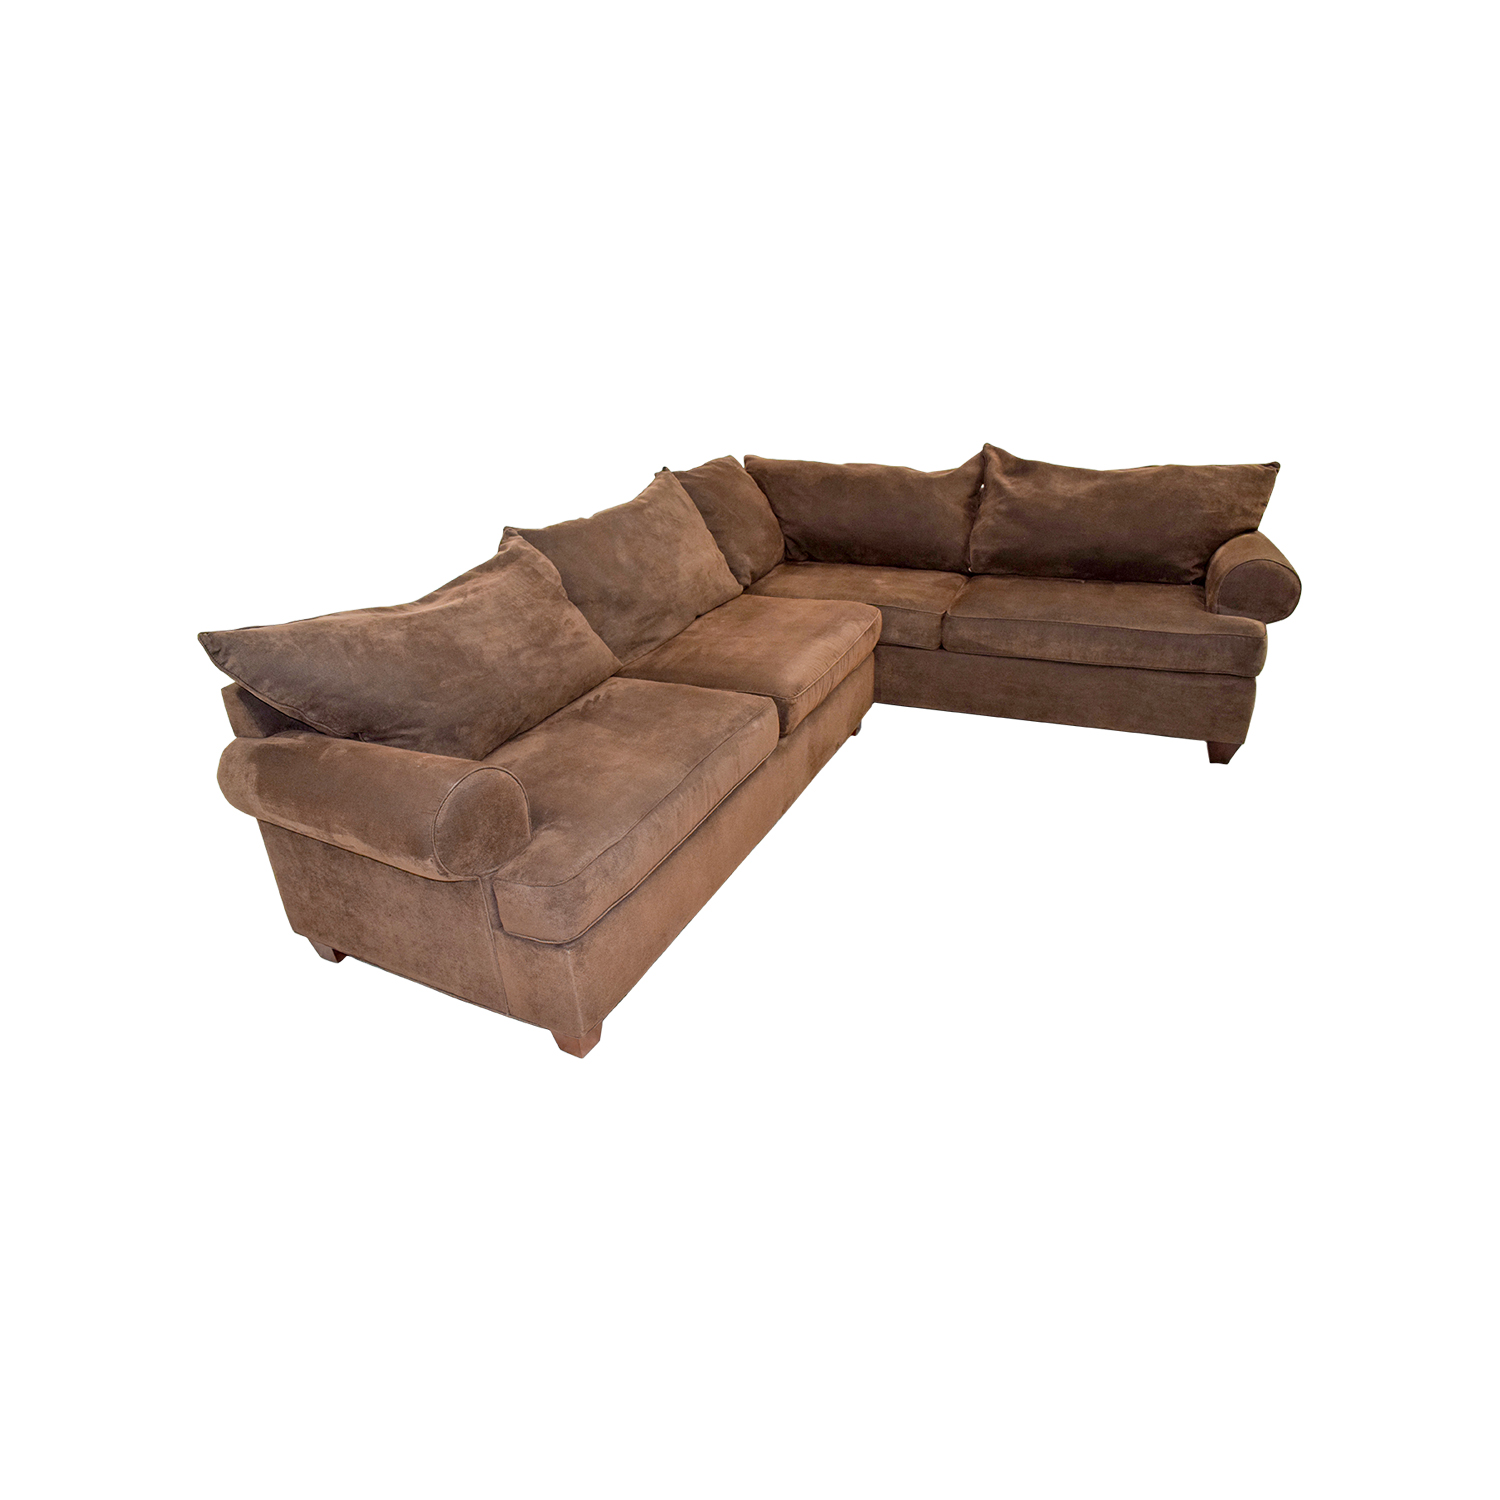 2nd hand sectional sofa best quality sleeper second l shaped sofas for home prices